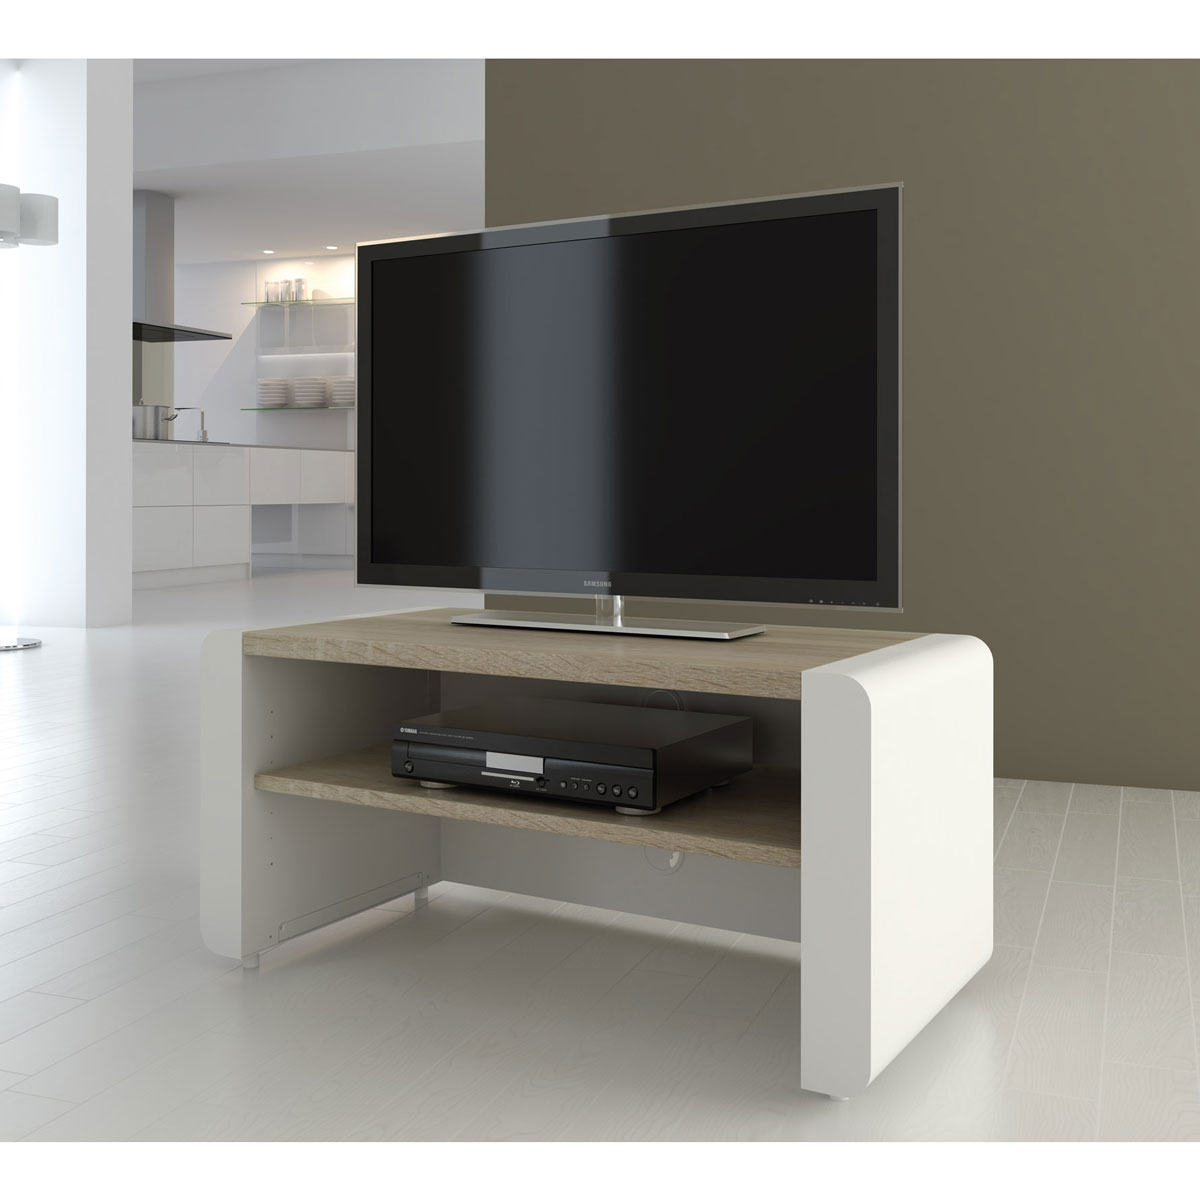 multimedia heimkino m bel sideboards f r lcd plasma tv bei hifi tv seite 1. Black Bedroom Furniture Sets. Home Design Ideas